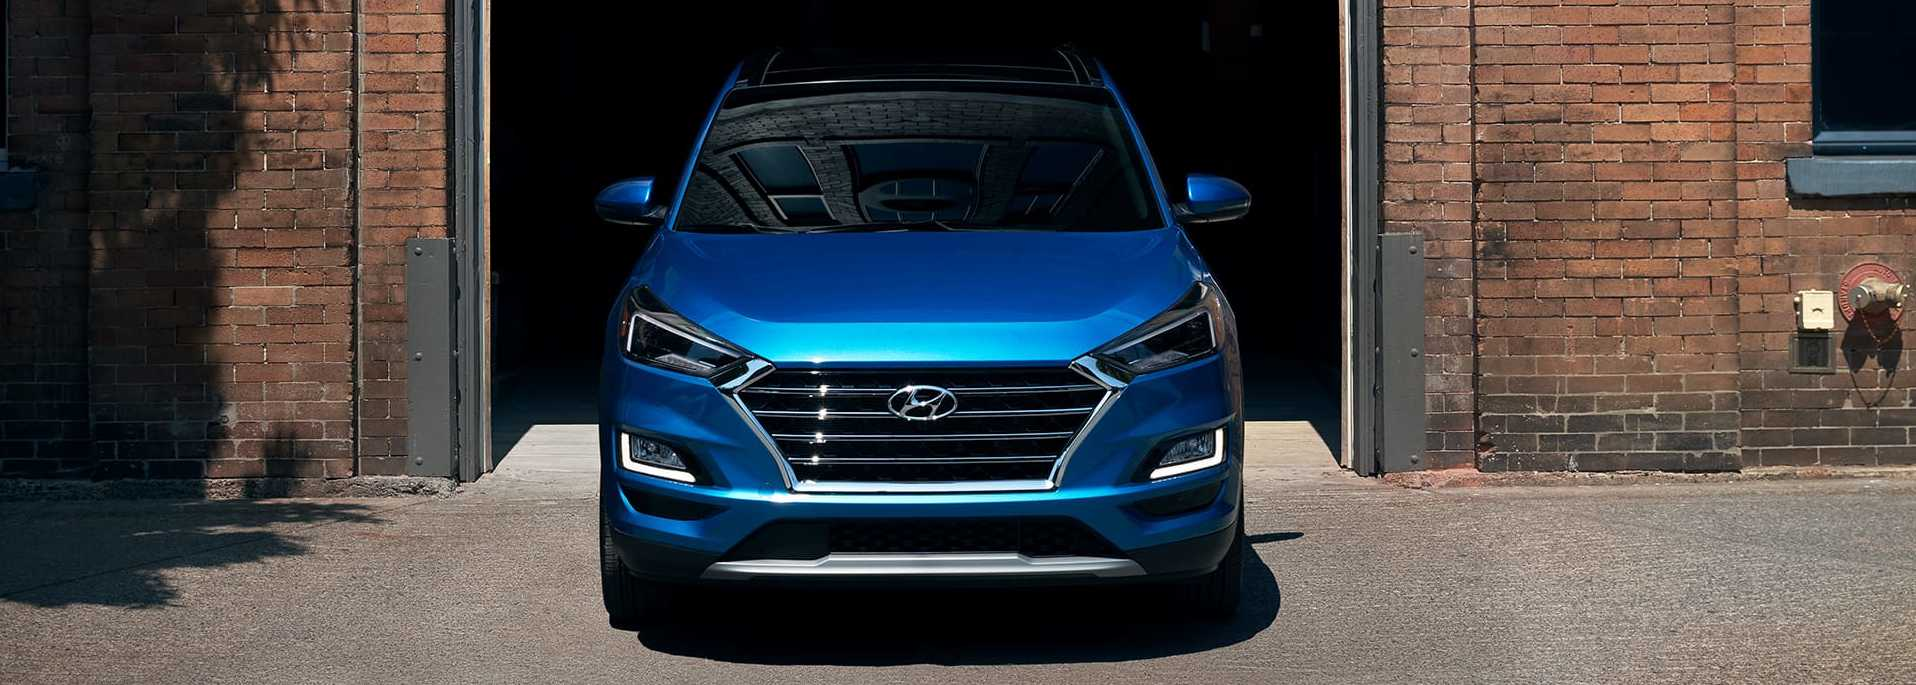 2020 Hyundai Tucson Leasing near Chantilly, VA